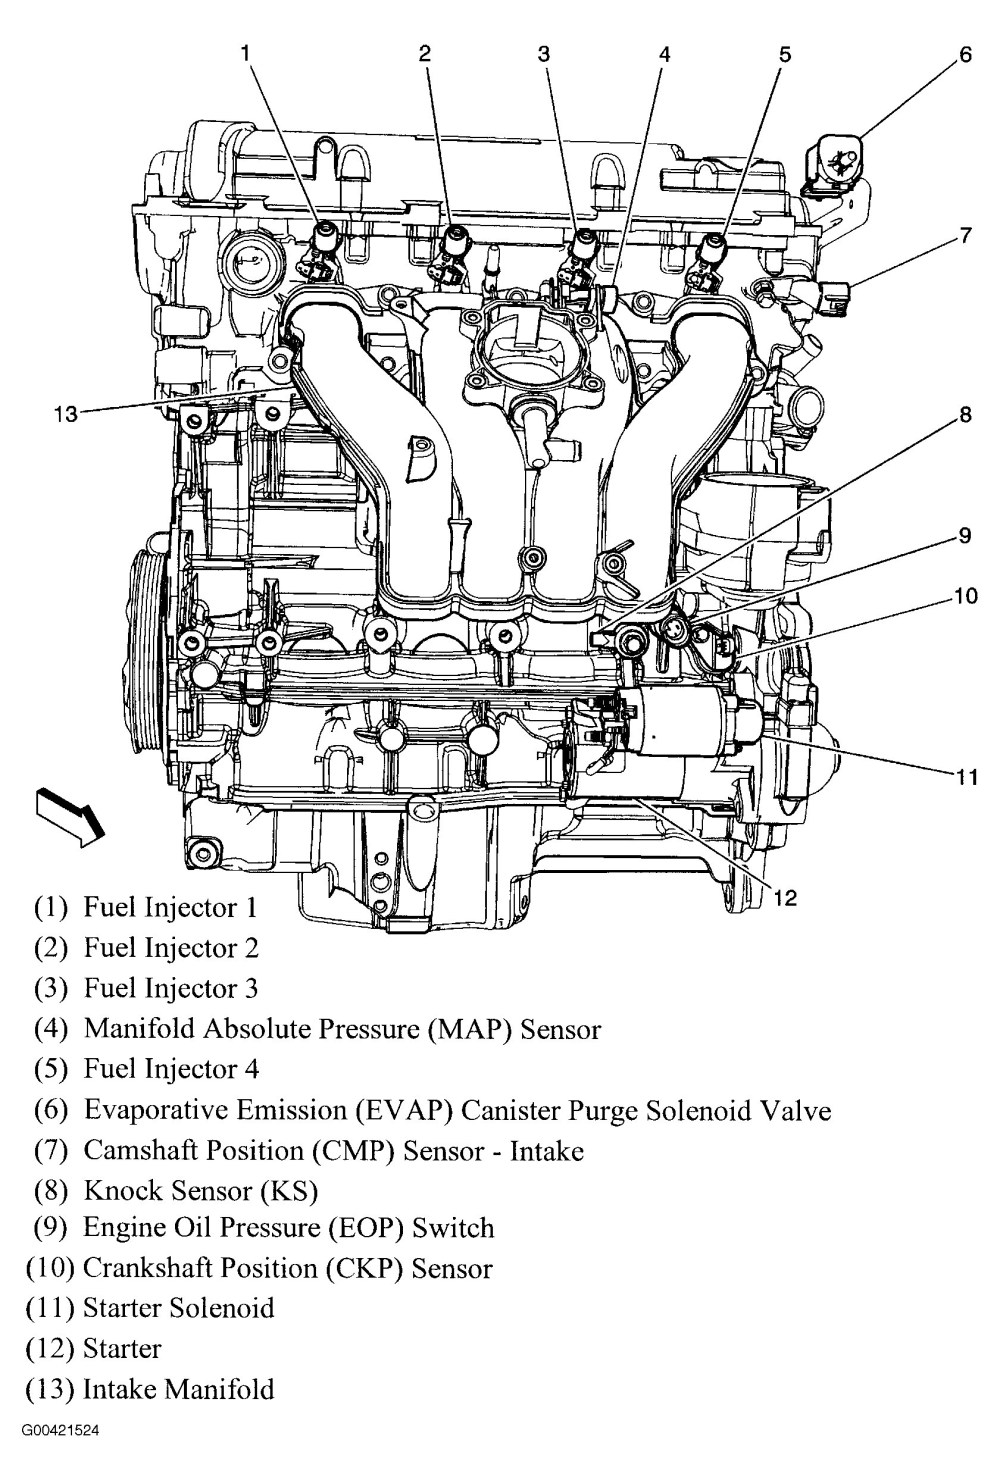 medium resolution of 1996 camaro engine diagram wiring diagram basic 96 camaro wiring diagram wiring diagram centre2011 camaro engine